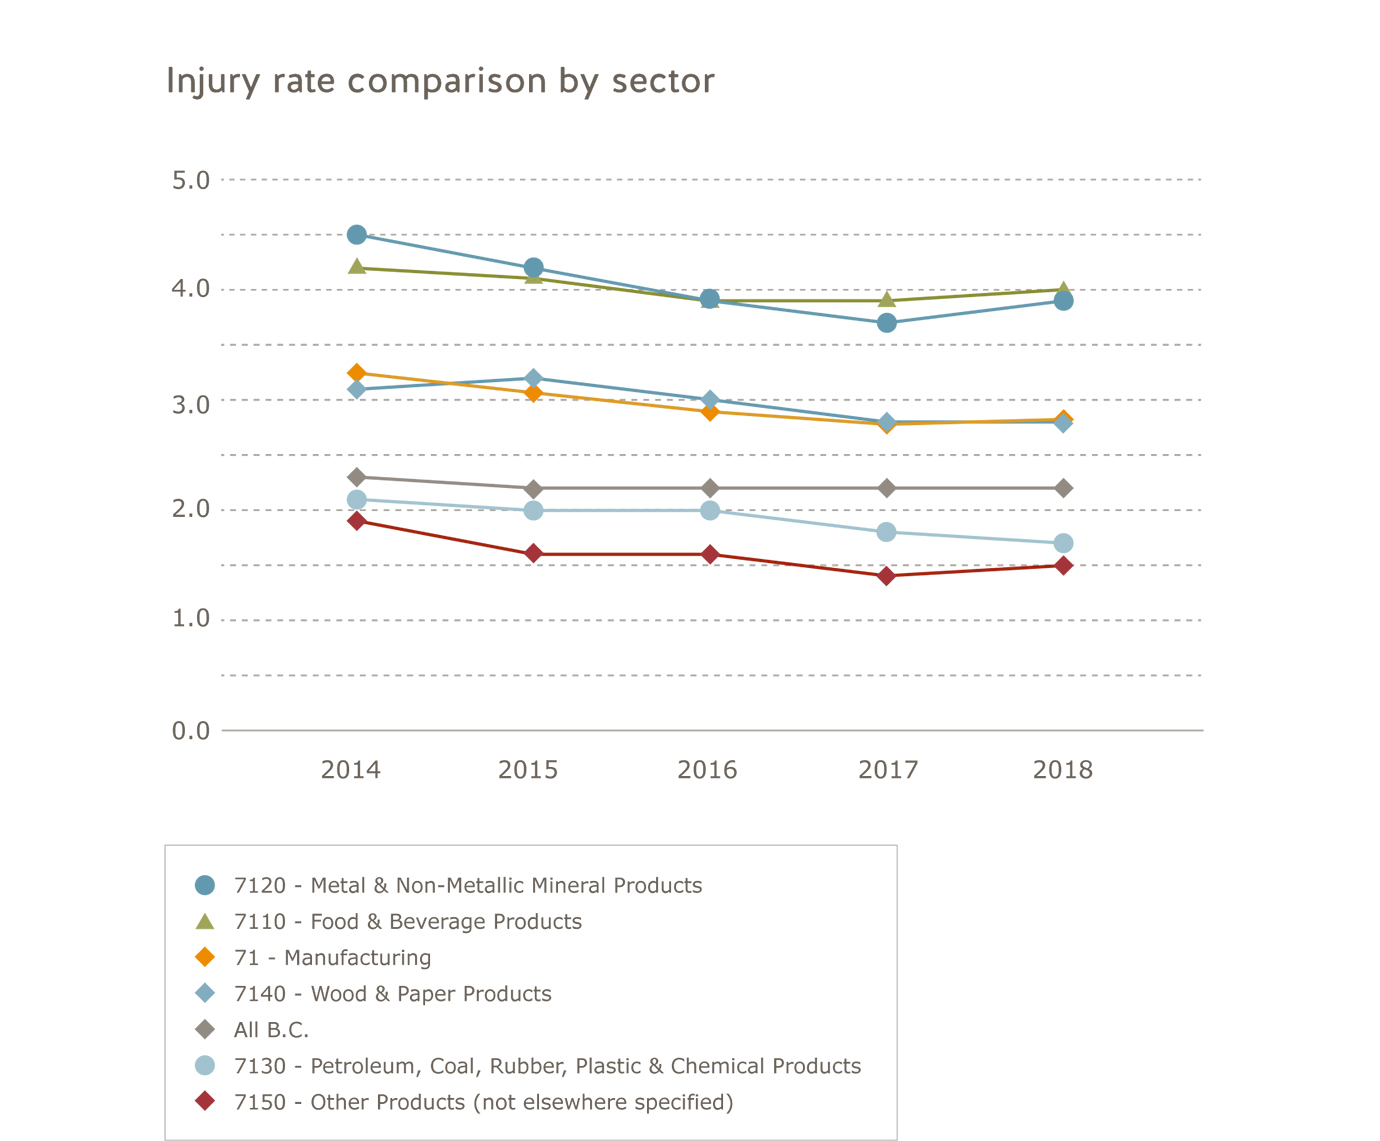 Manufacturing industry injury rate comparison by sector for 2014 to 2018